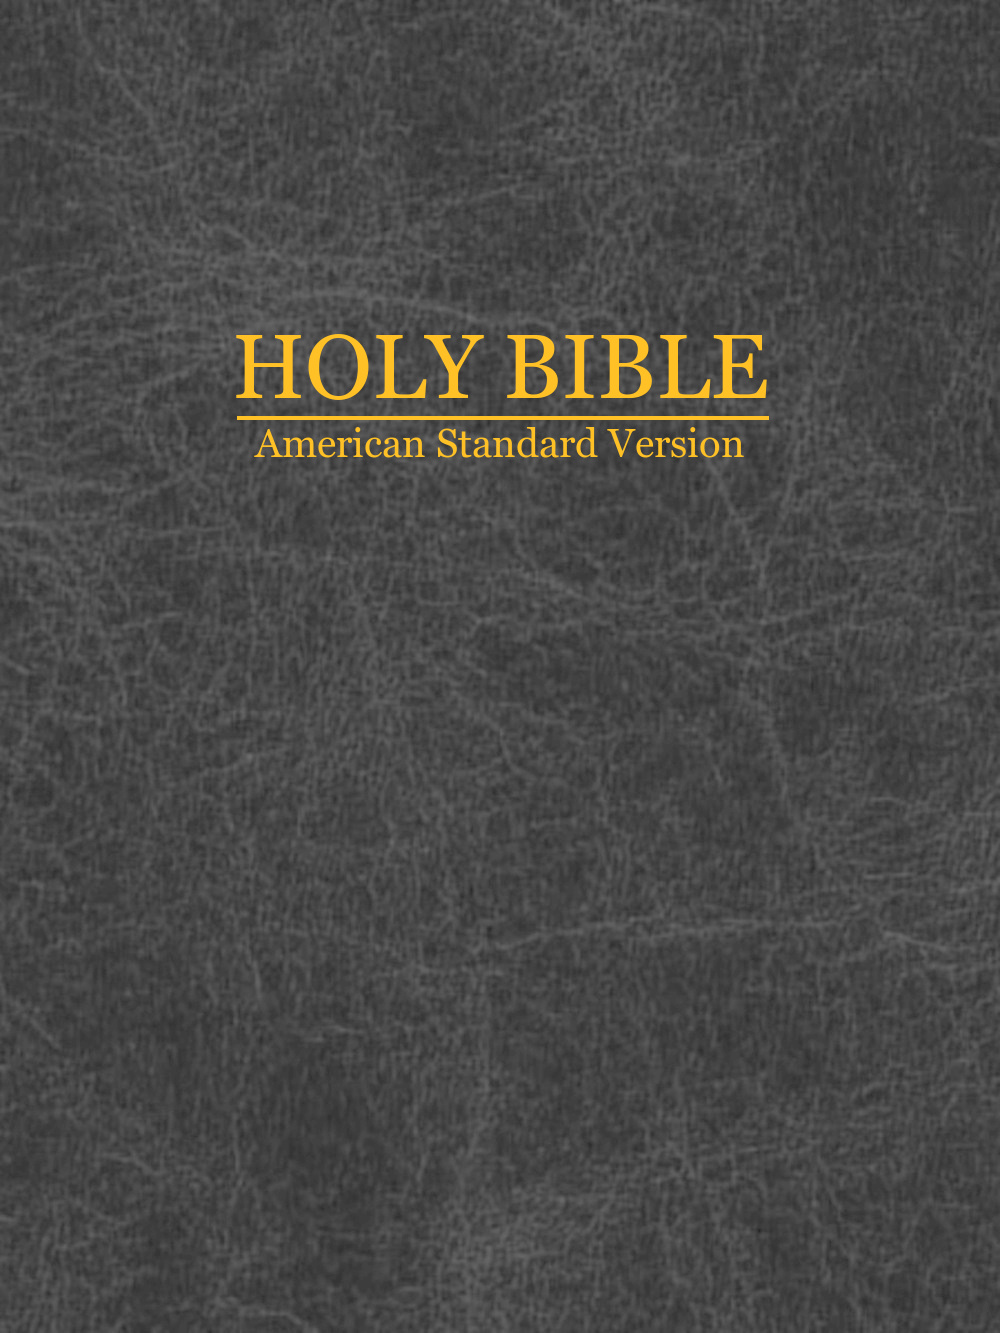 Christian Quotes Wallpaper Black American Standard Version Of The Holy Bible 1901